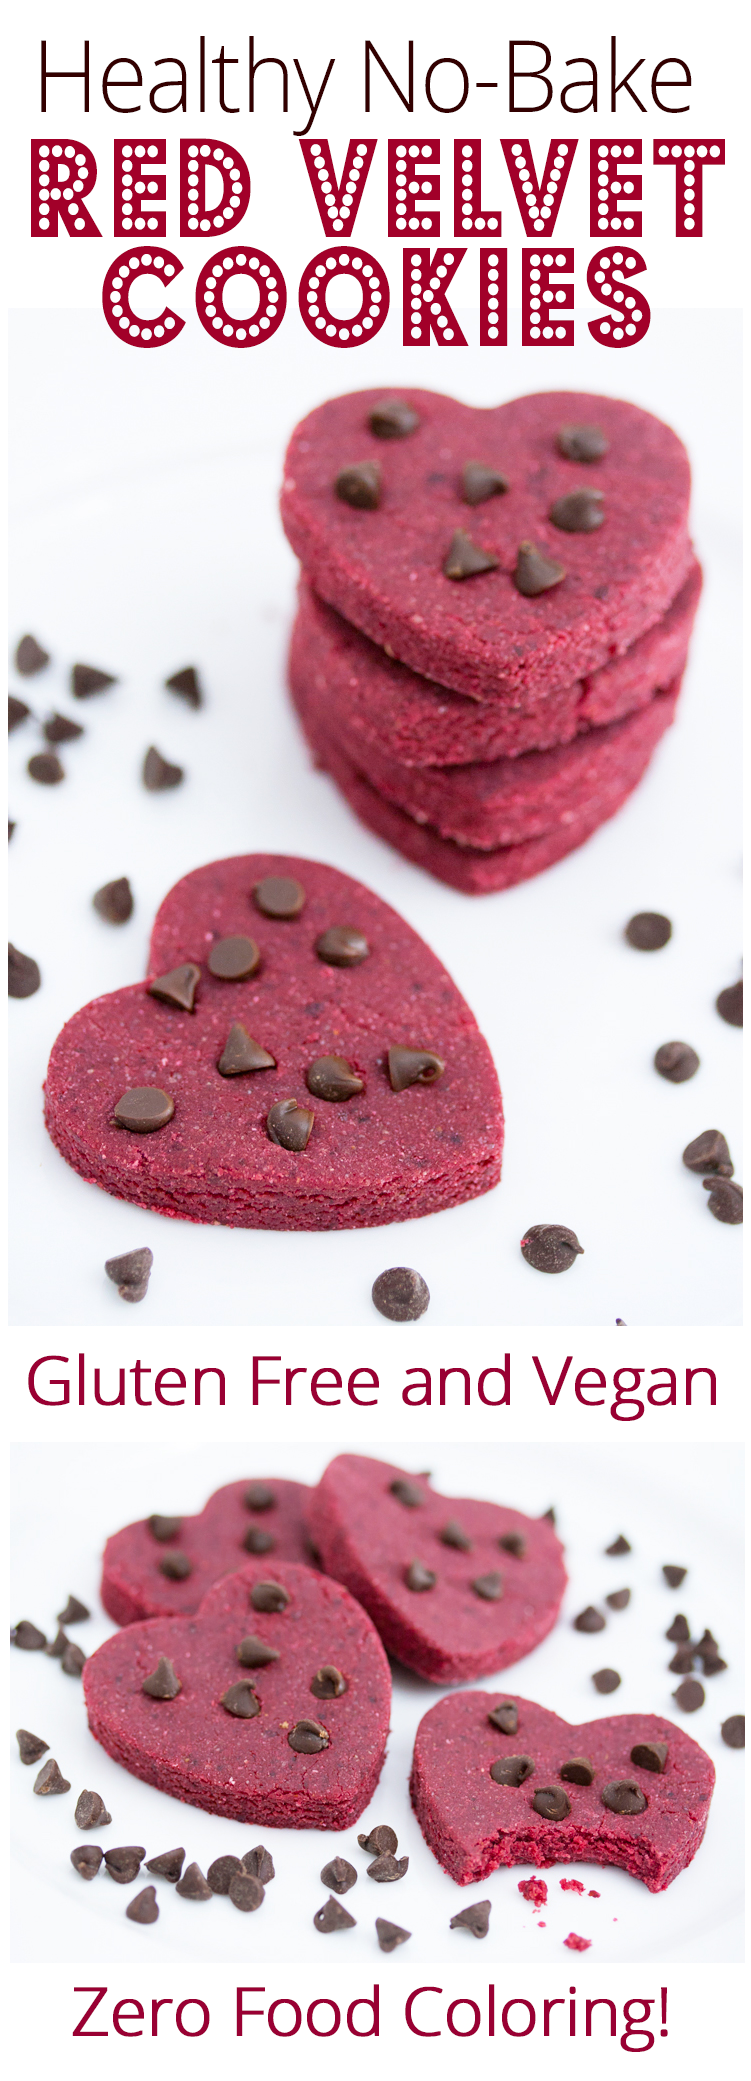 Skinny No-Bake Red Velvet Cookies (Gluten Free, Vegan)